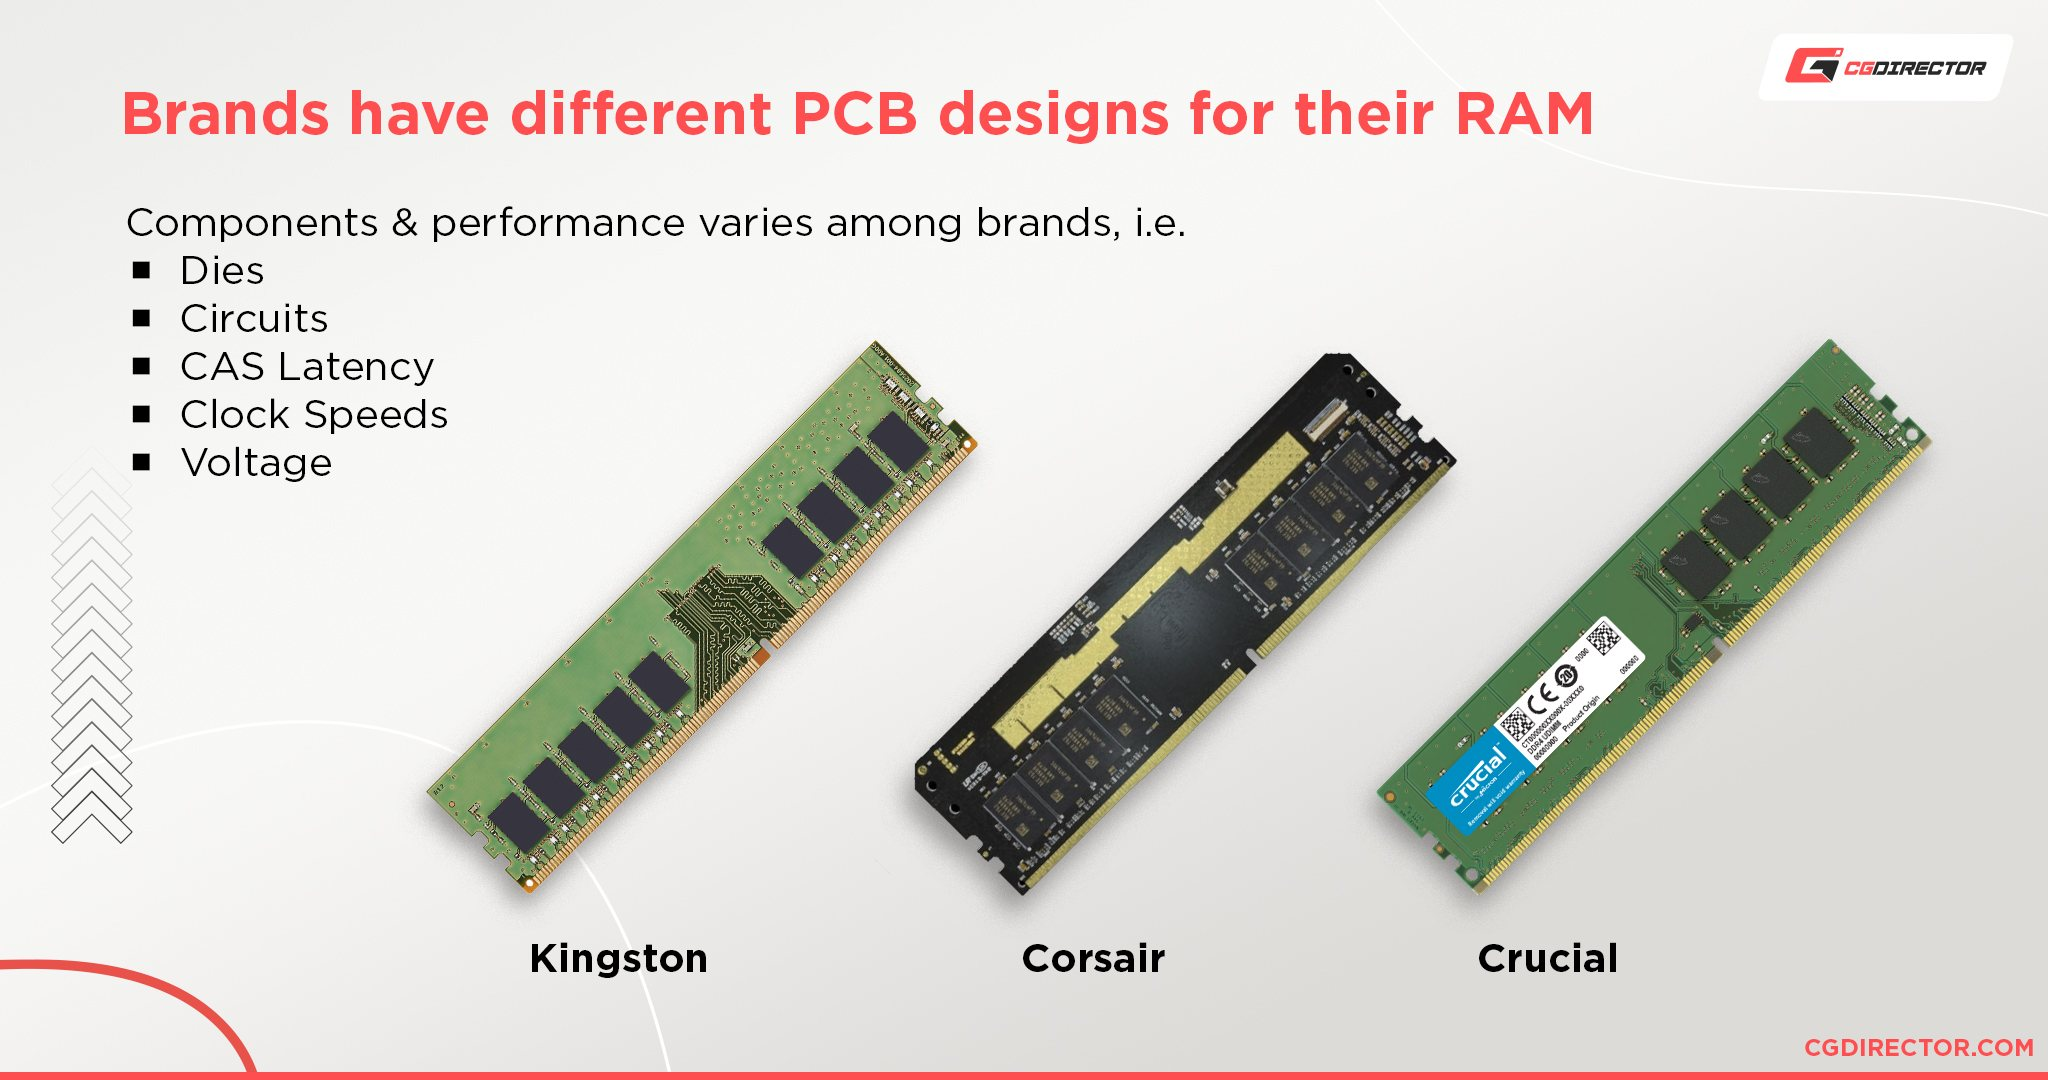 Can You Use Two Different Brands of RAM